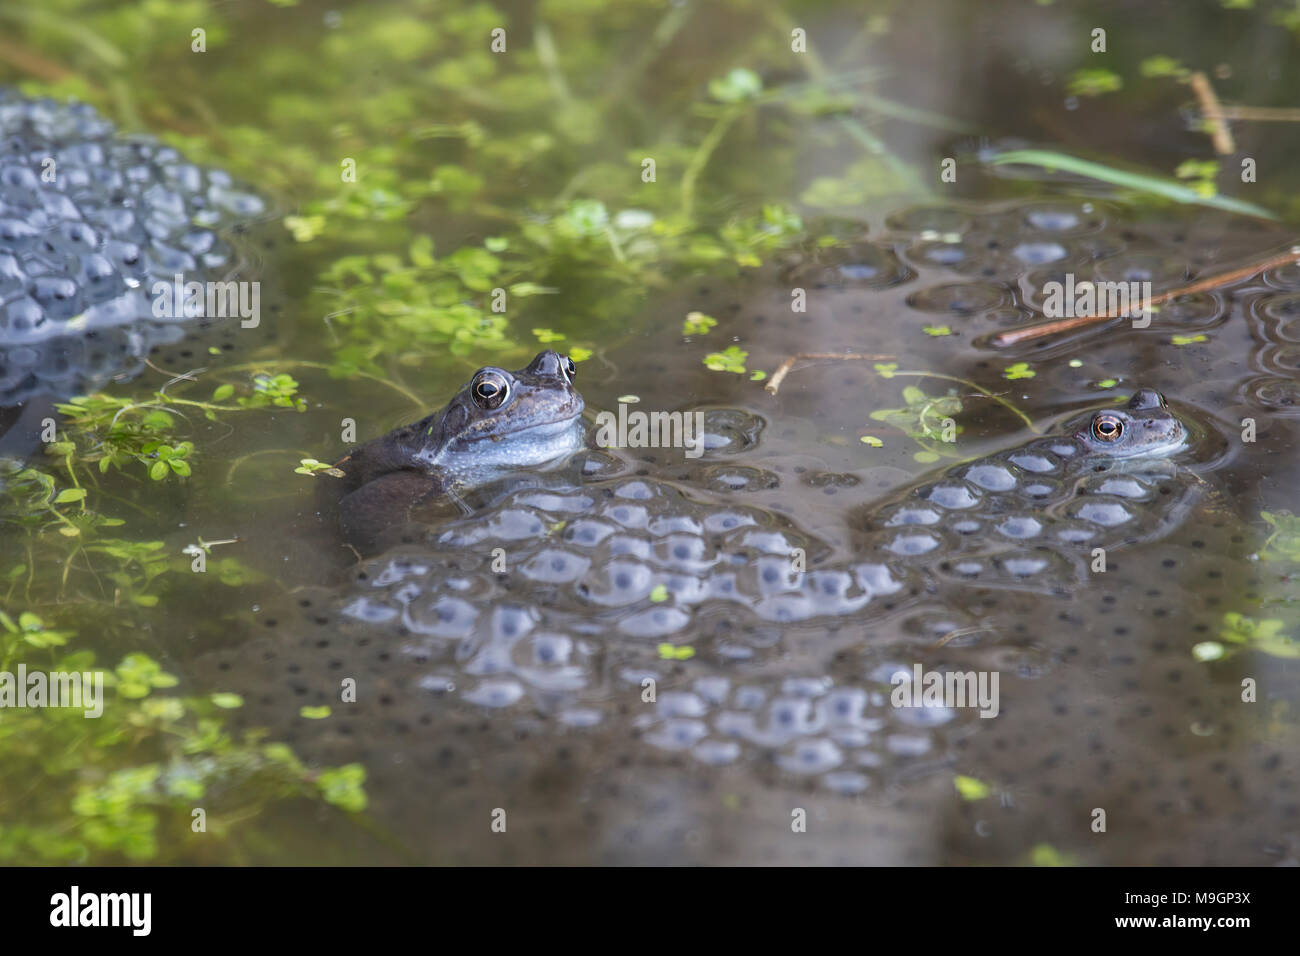 Common frogs Rana temporaria in a garden pond surrounded by frog spawn in spring - Stock Image